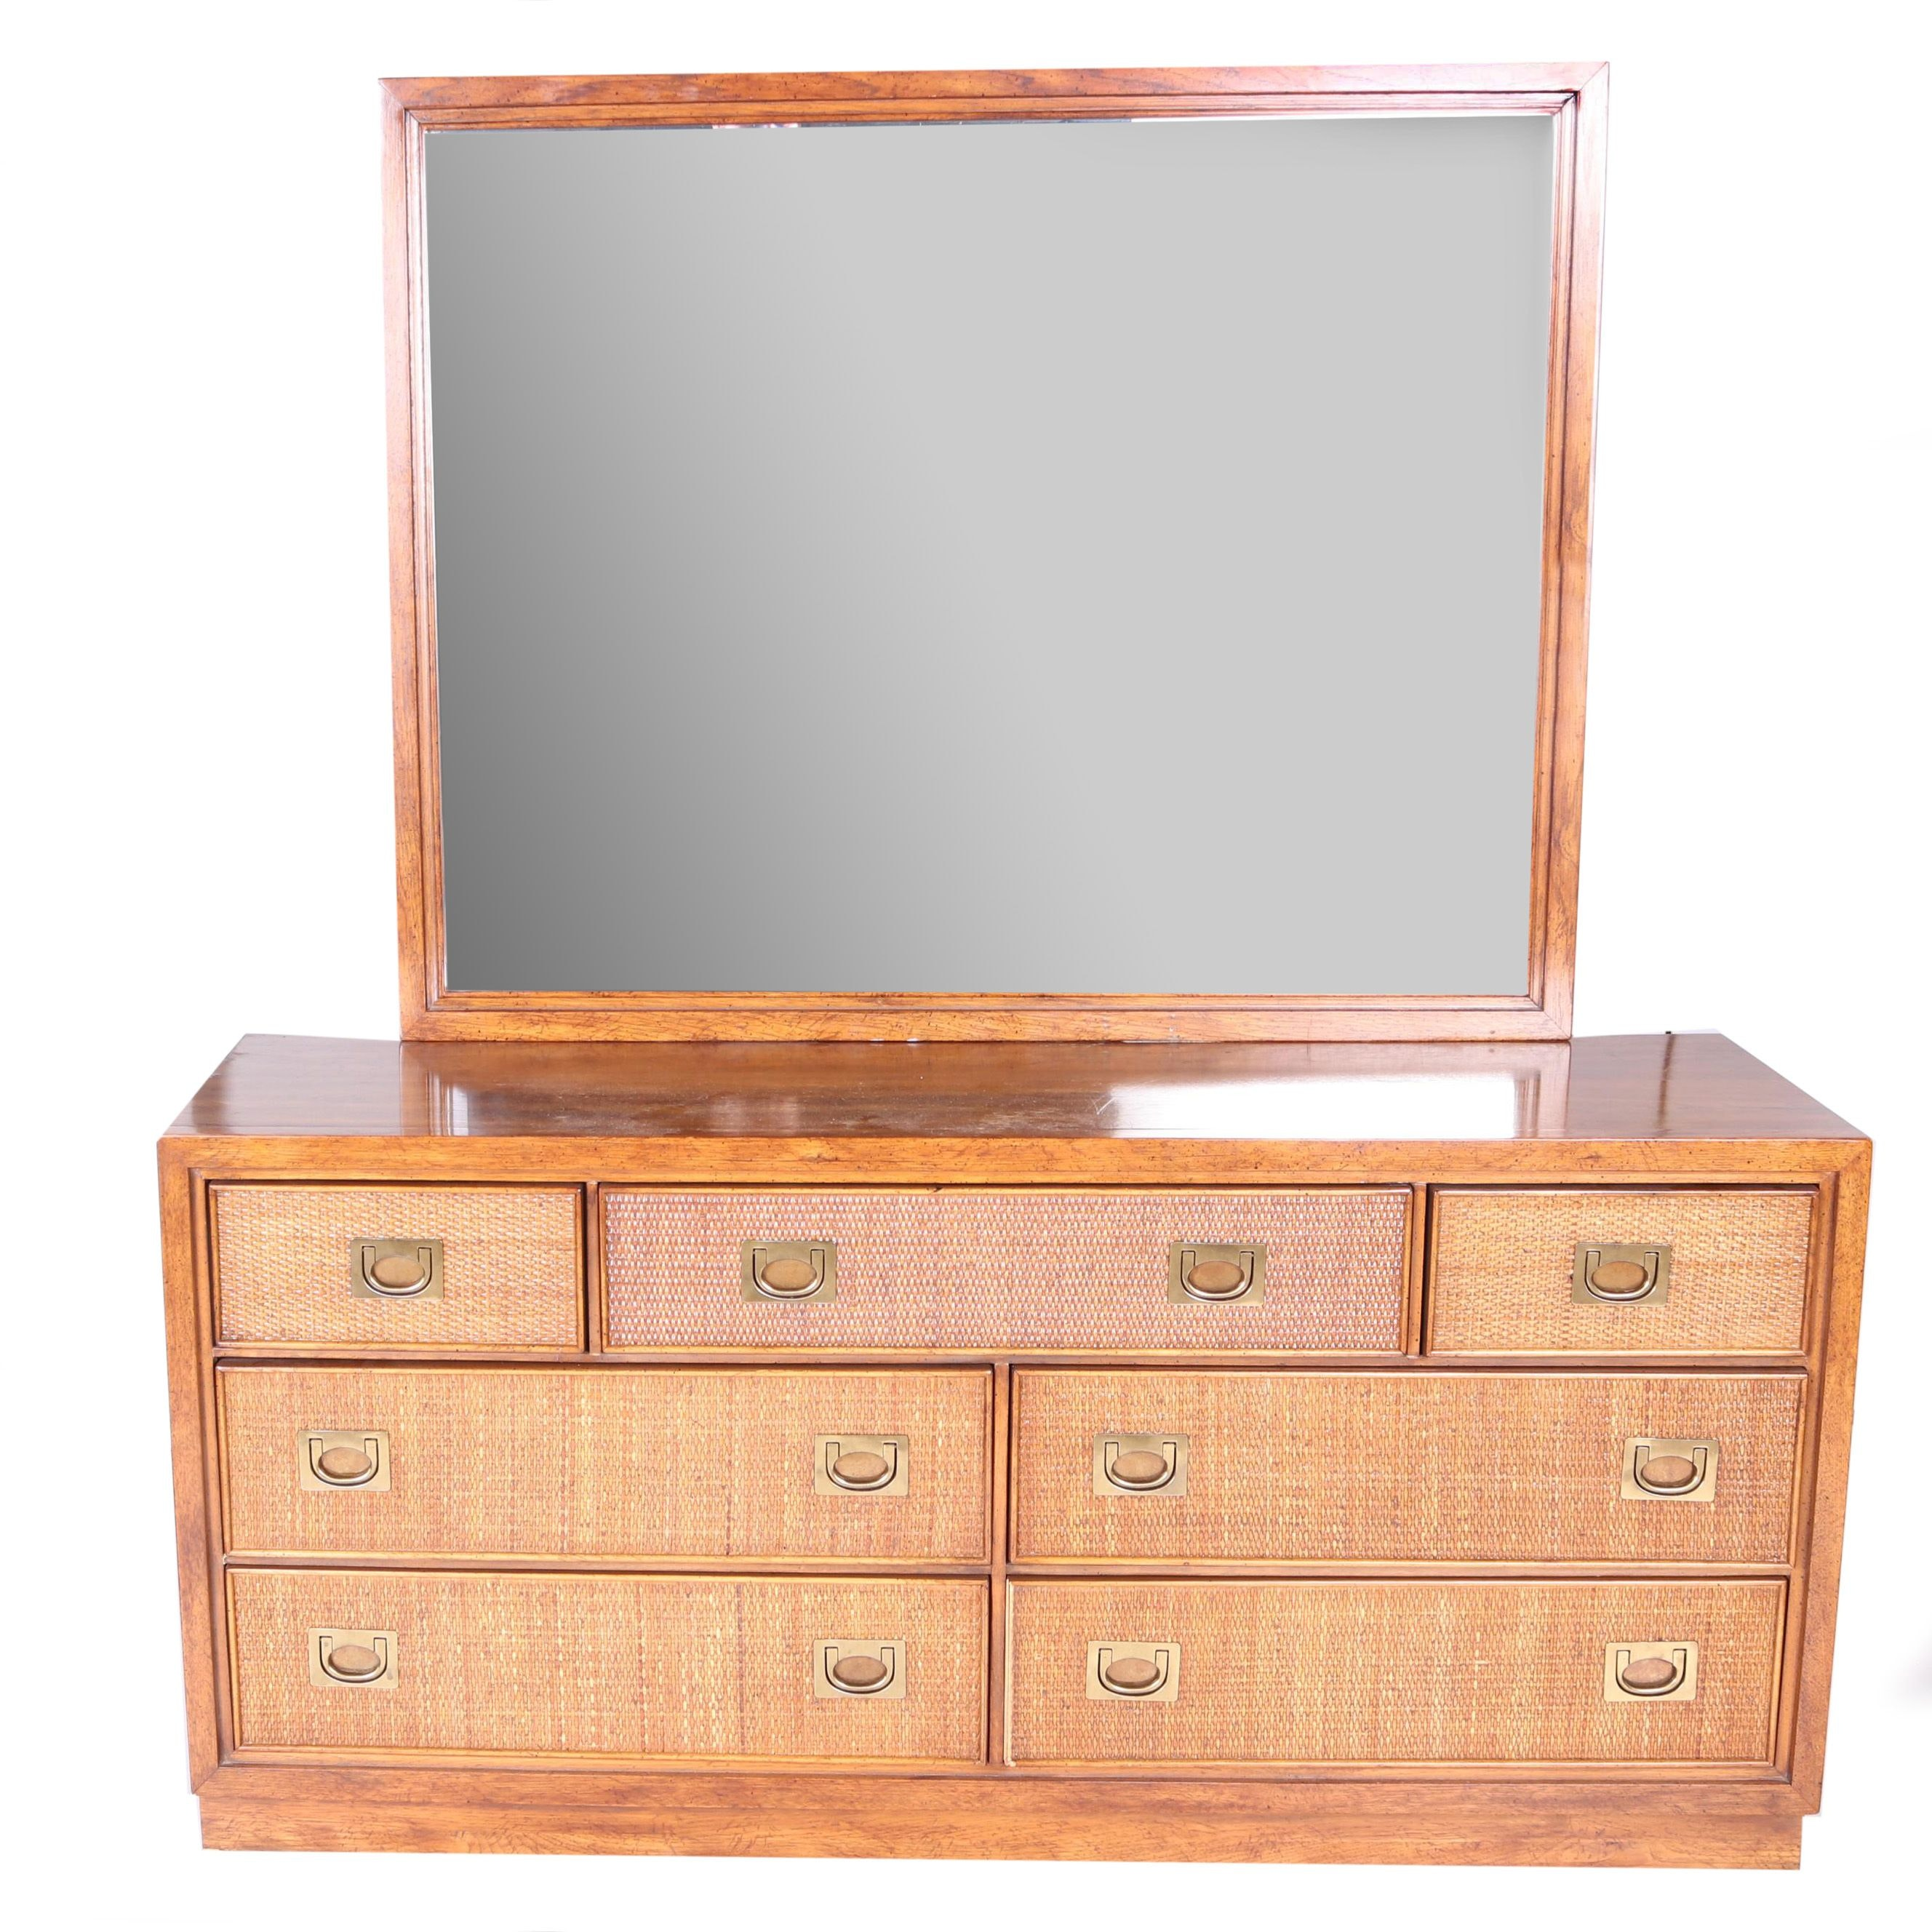 Vintage Mid Century Modern Dresser with Mirror by American of Martinsville